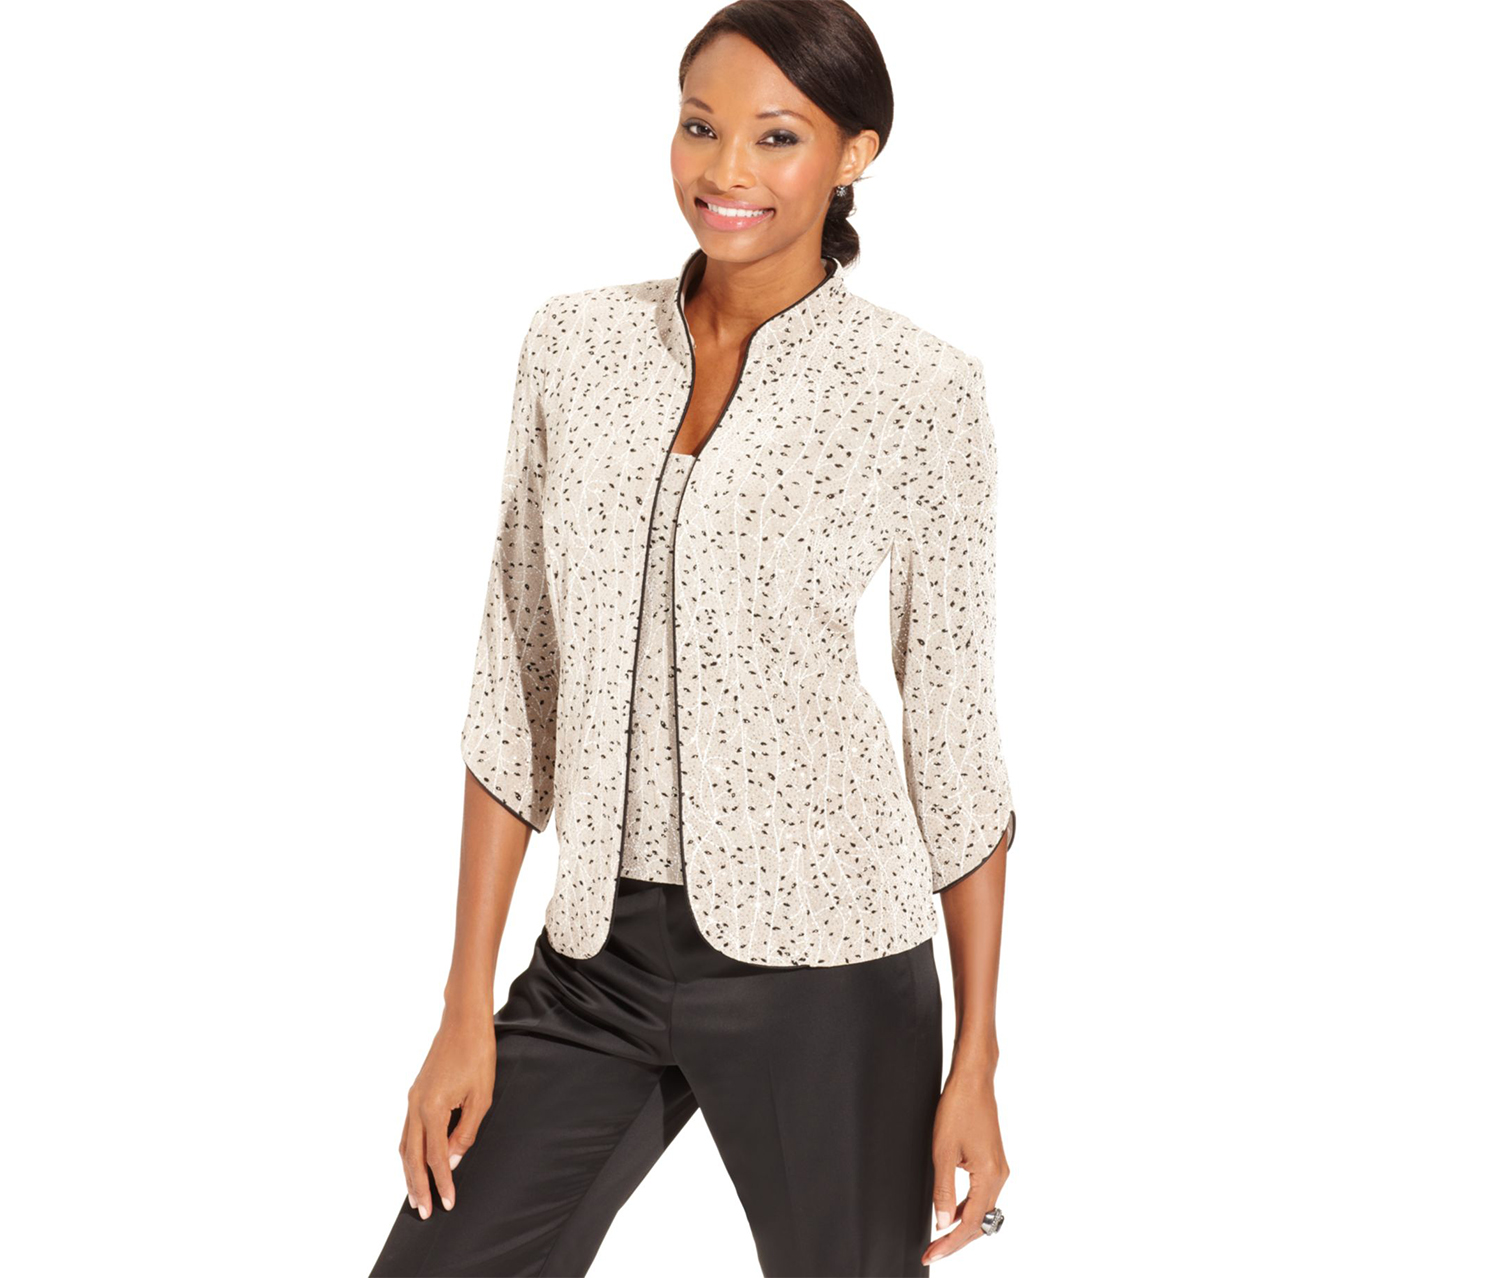 Women's Three-Quarter-Sleeve Floral-Print Jacket and Top, Beige